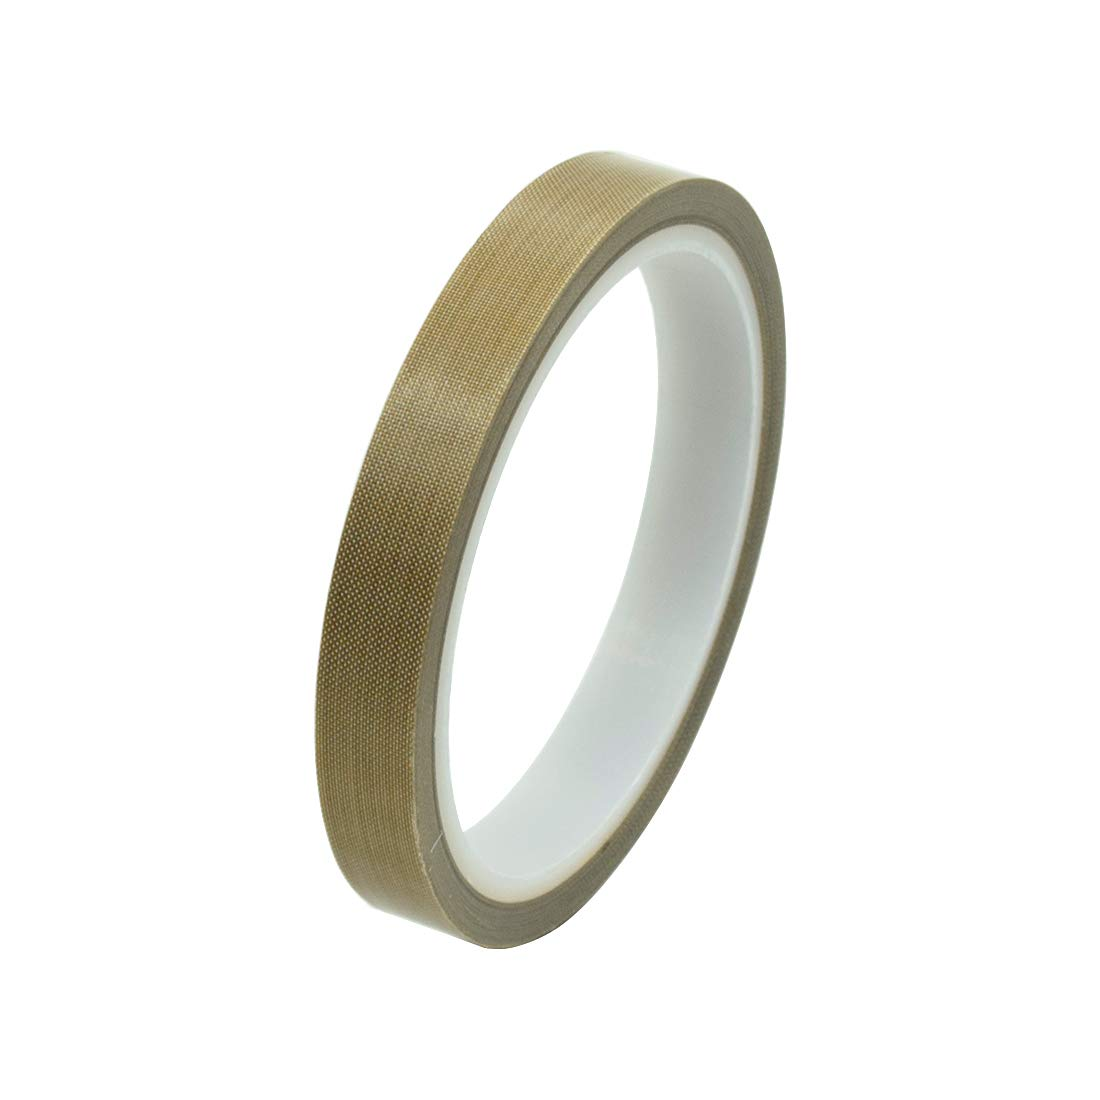 TUOREN Teflon Tape/PTFE Tape for Vacuum, Hand and Impulse Sealers(1/2in x 30ft)